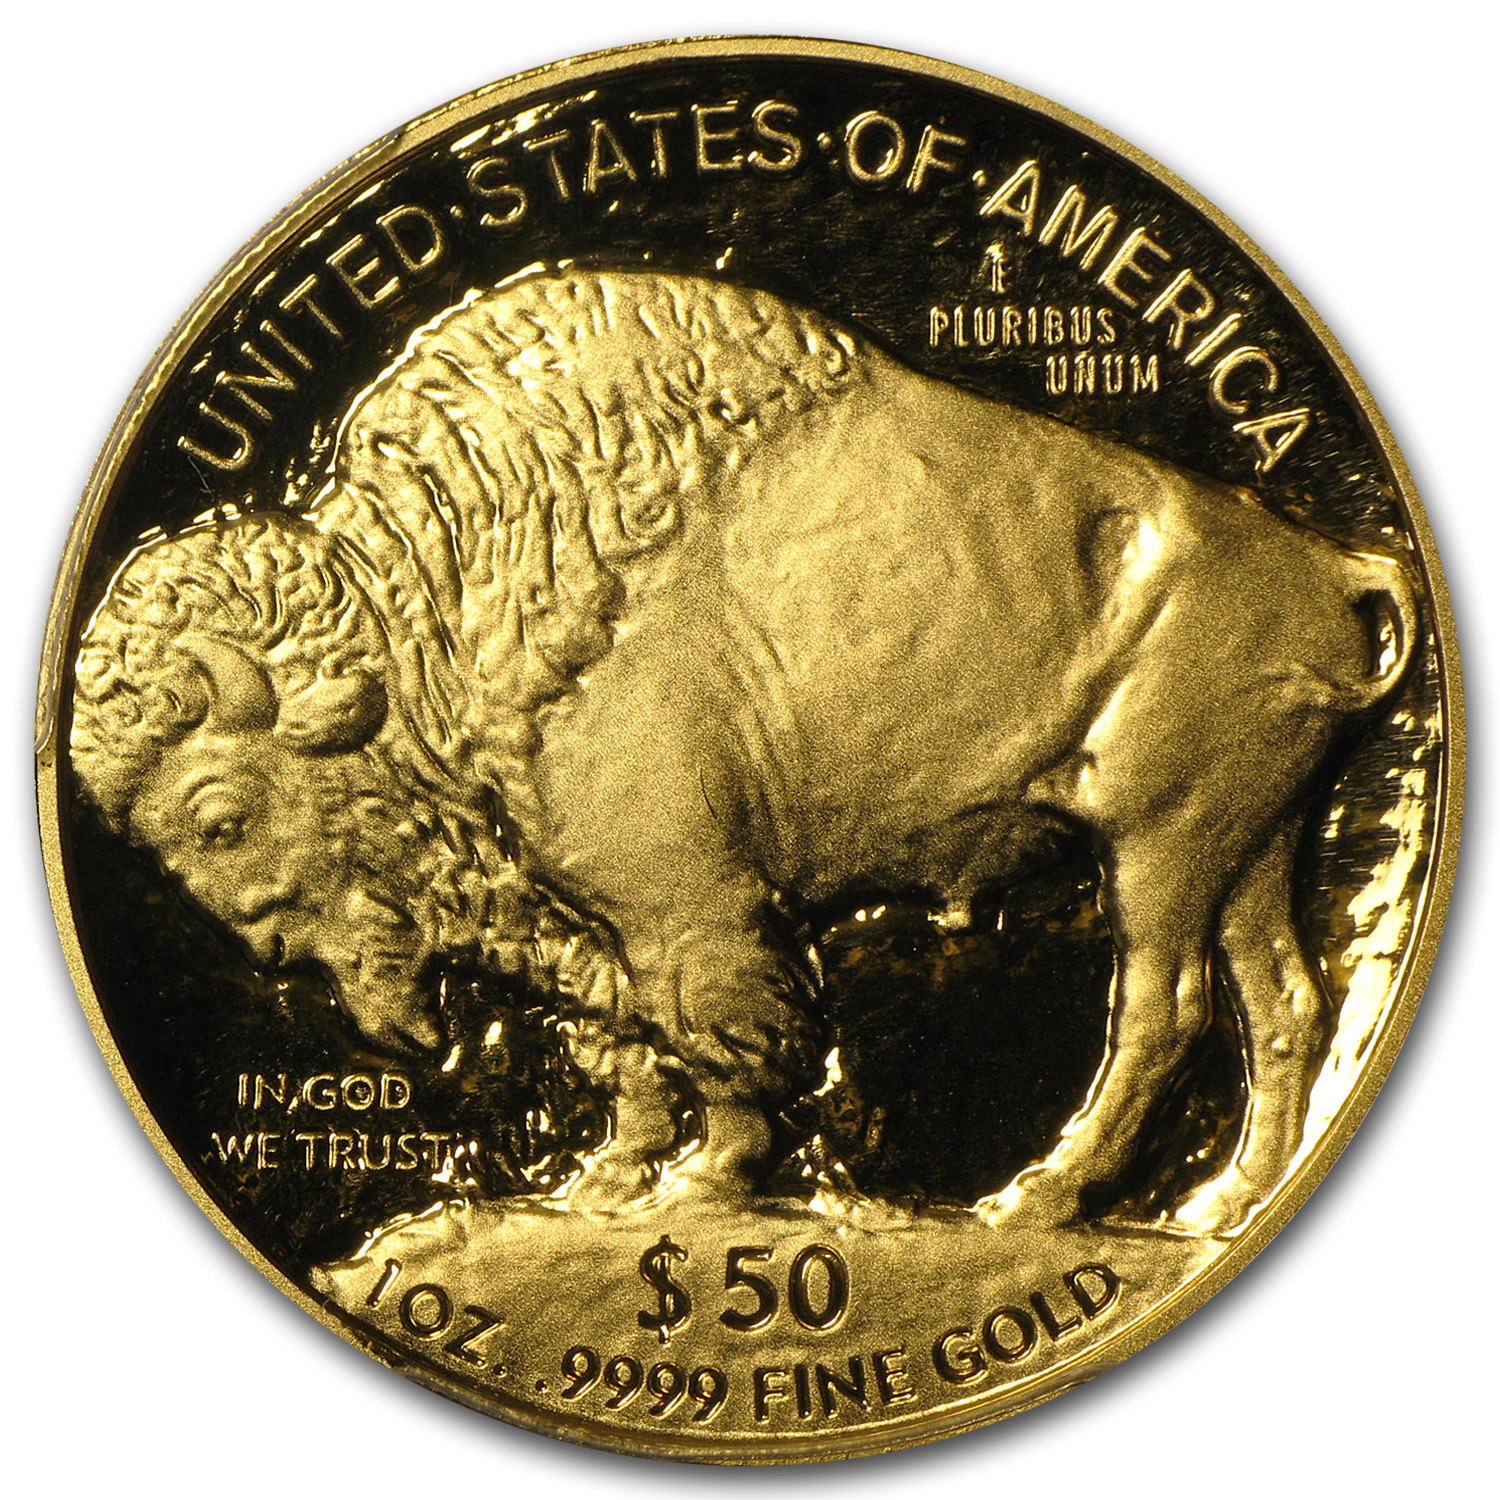 2006-W 1 oz Proof Gold Buffalo PR-70 PCGS FS (Black Diamond)